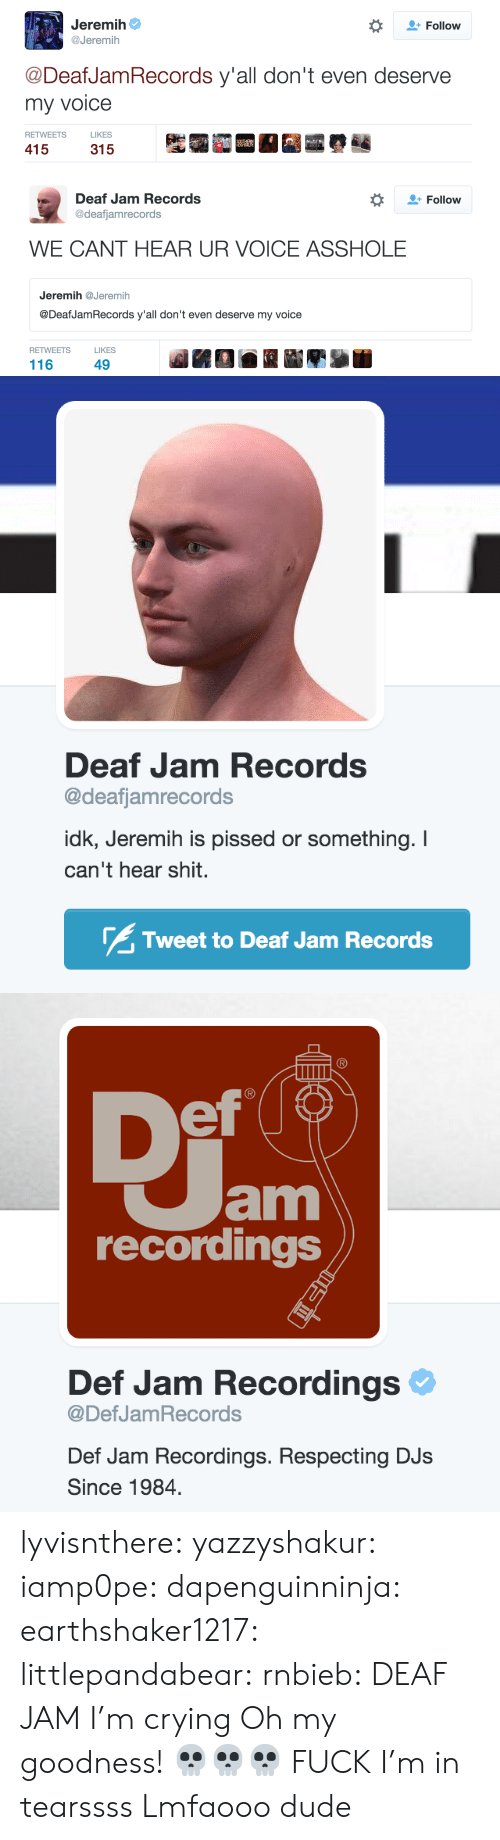 Is Pissed: Jeremih  @Jeremih  *  Follow  @DeafJamRecords y'all don't even deserve  my voice  RETWEETS  LIKES  415   Follow  Deaf Jam Records  @deafjamrecords  WE CANT HEAR UR VOICE ASSHOLE  Jeremih@Jeremih  @DeafJamRecords y'all don't even deserve my voice  RETWEETS  LIKES  116  49   Deaf Jam Records  @deafjamrecords  idk, Jeremih is pissed or something. I  can't hear shit.  Tweet to Deaf Jam Records   ef  am  recordings  Def Jam Recordings  @DefJamRecords  Def Jam Recordings. Respecting DJs  Since 1984 lyvisnthere:  yazzyshakur:  iamp0pe:  dapenguinninja:  earthshaker1217:  littlepandabear:  rnbieb:  DEAF JAM  I'm crying  Oh my goodness!  💀💀💀  FUCK  I'm in tearssss  Lmfaooo dude